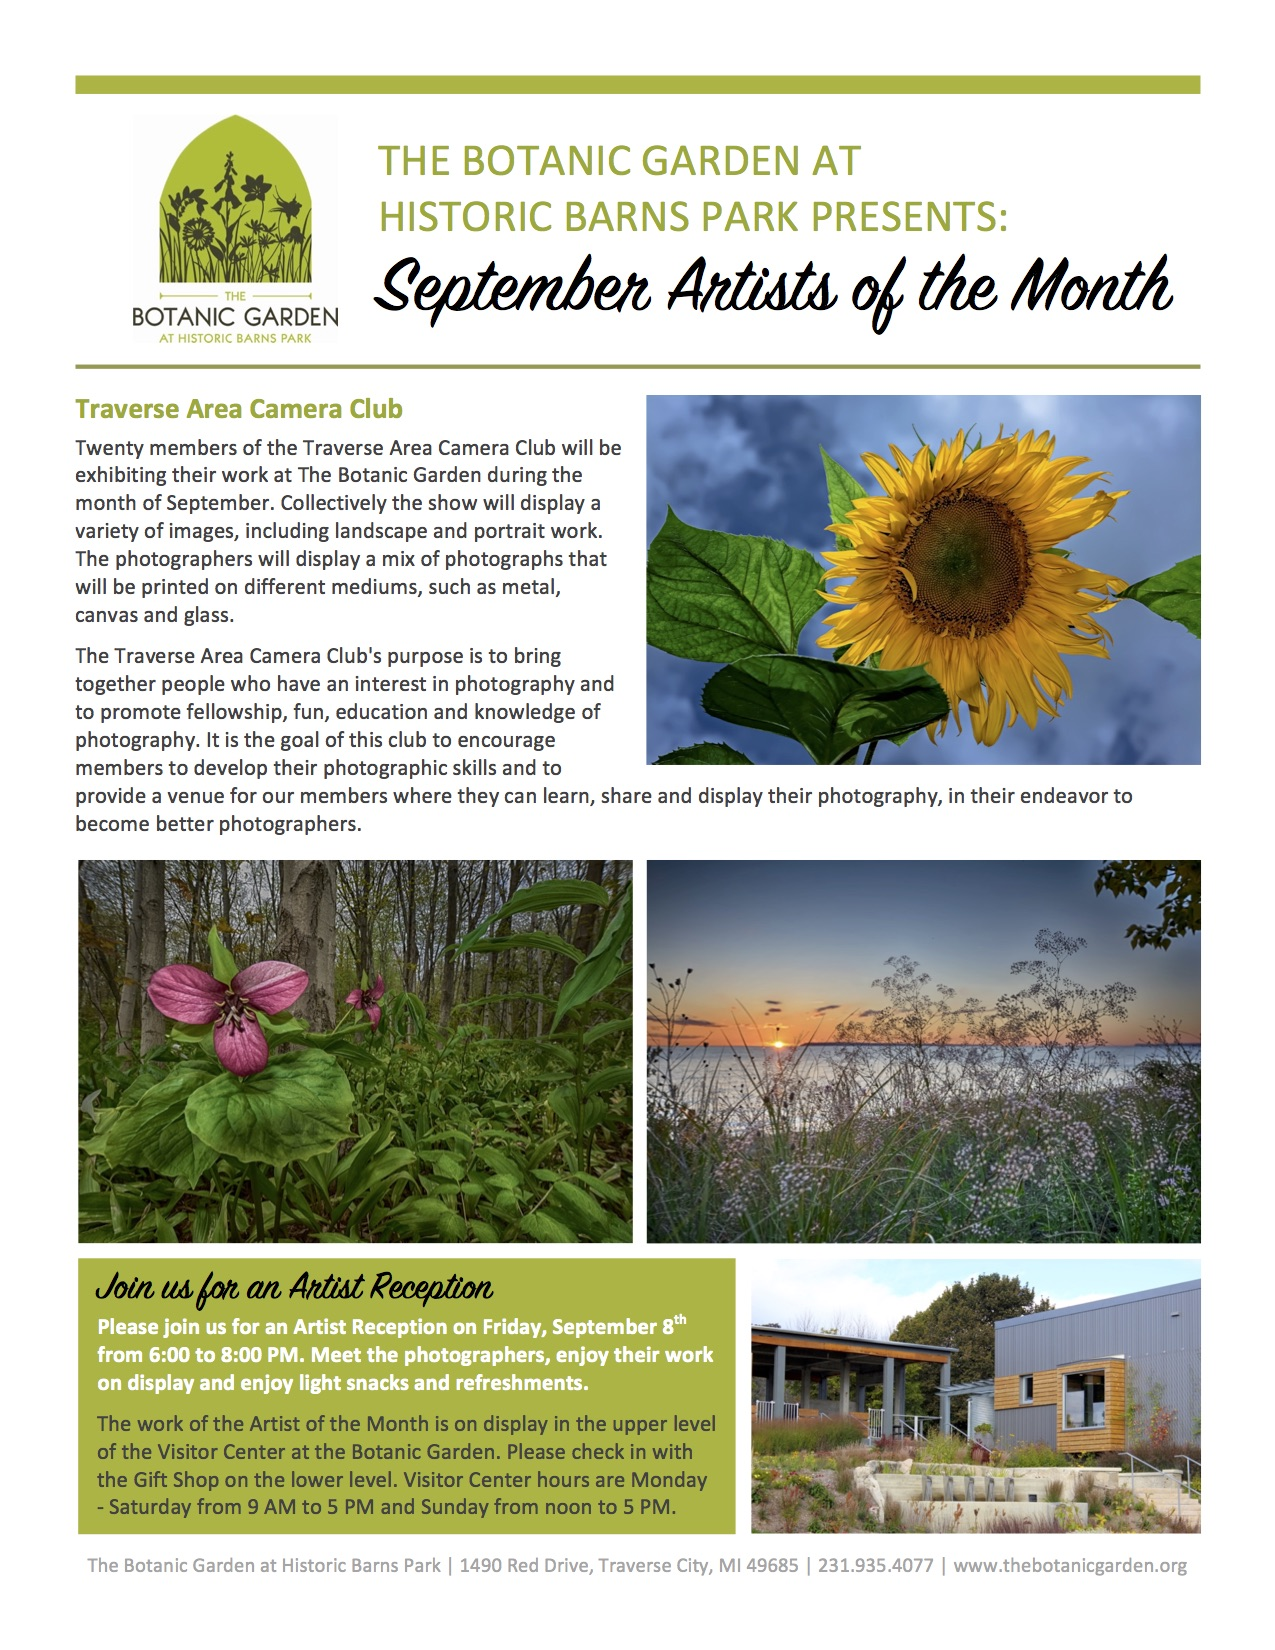 September Artist of the Month Reception